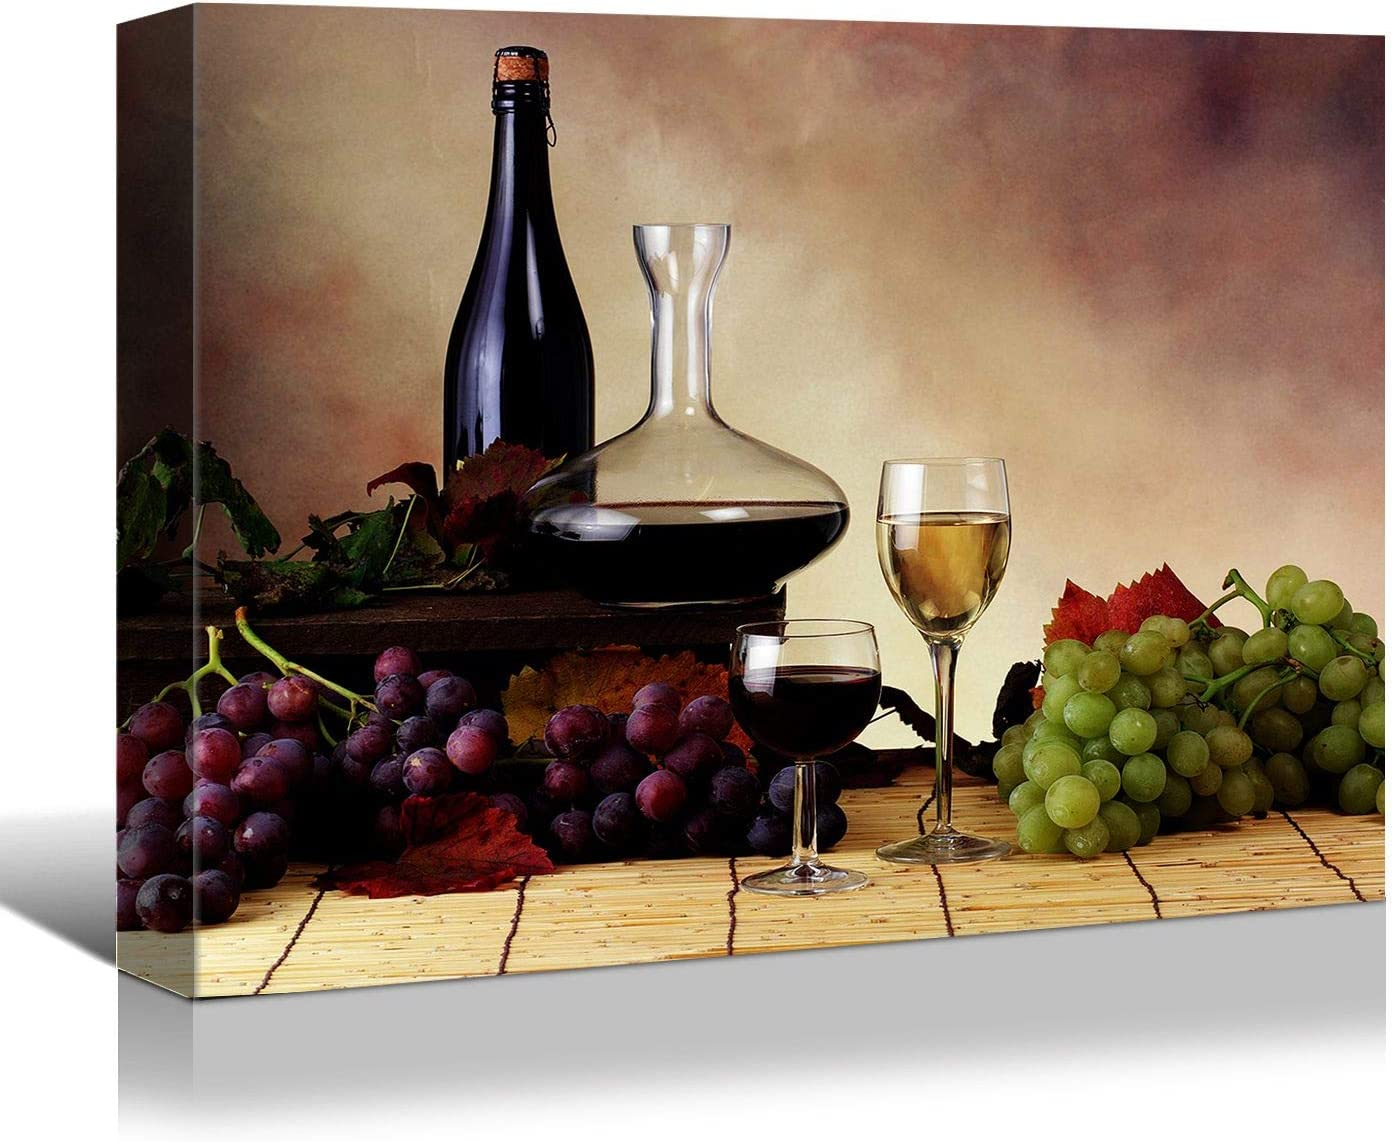 Looife Kitchen Still Life Canvas Wall Art, 18x12 Inch Vintage Wine Bottle with Grapes Picture Prints Wall Decor, Food Art Deco for Dining Room and Bar Wall Decoration